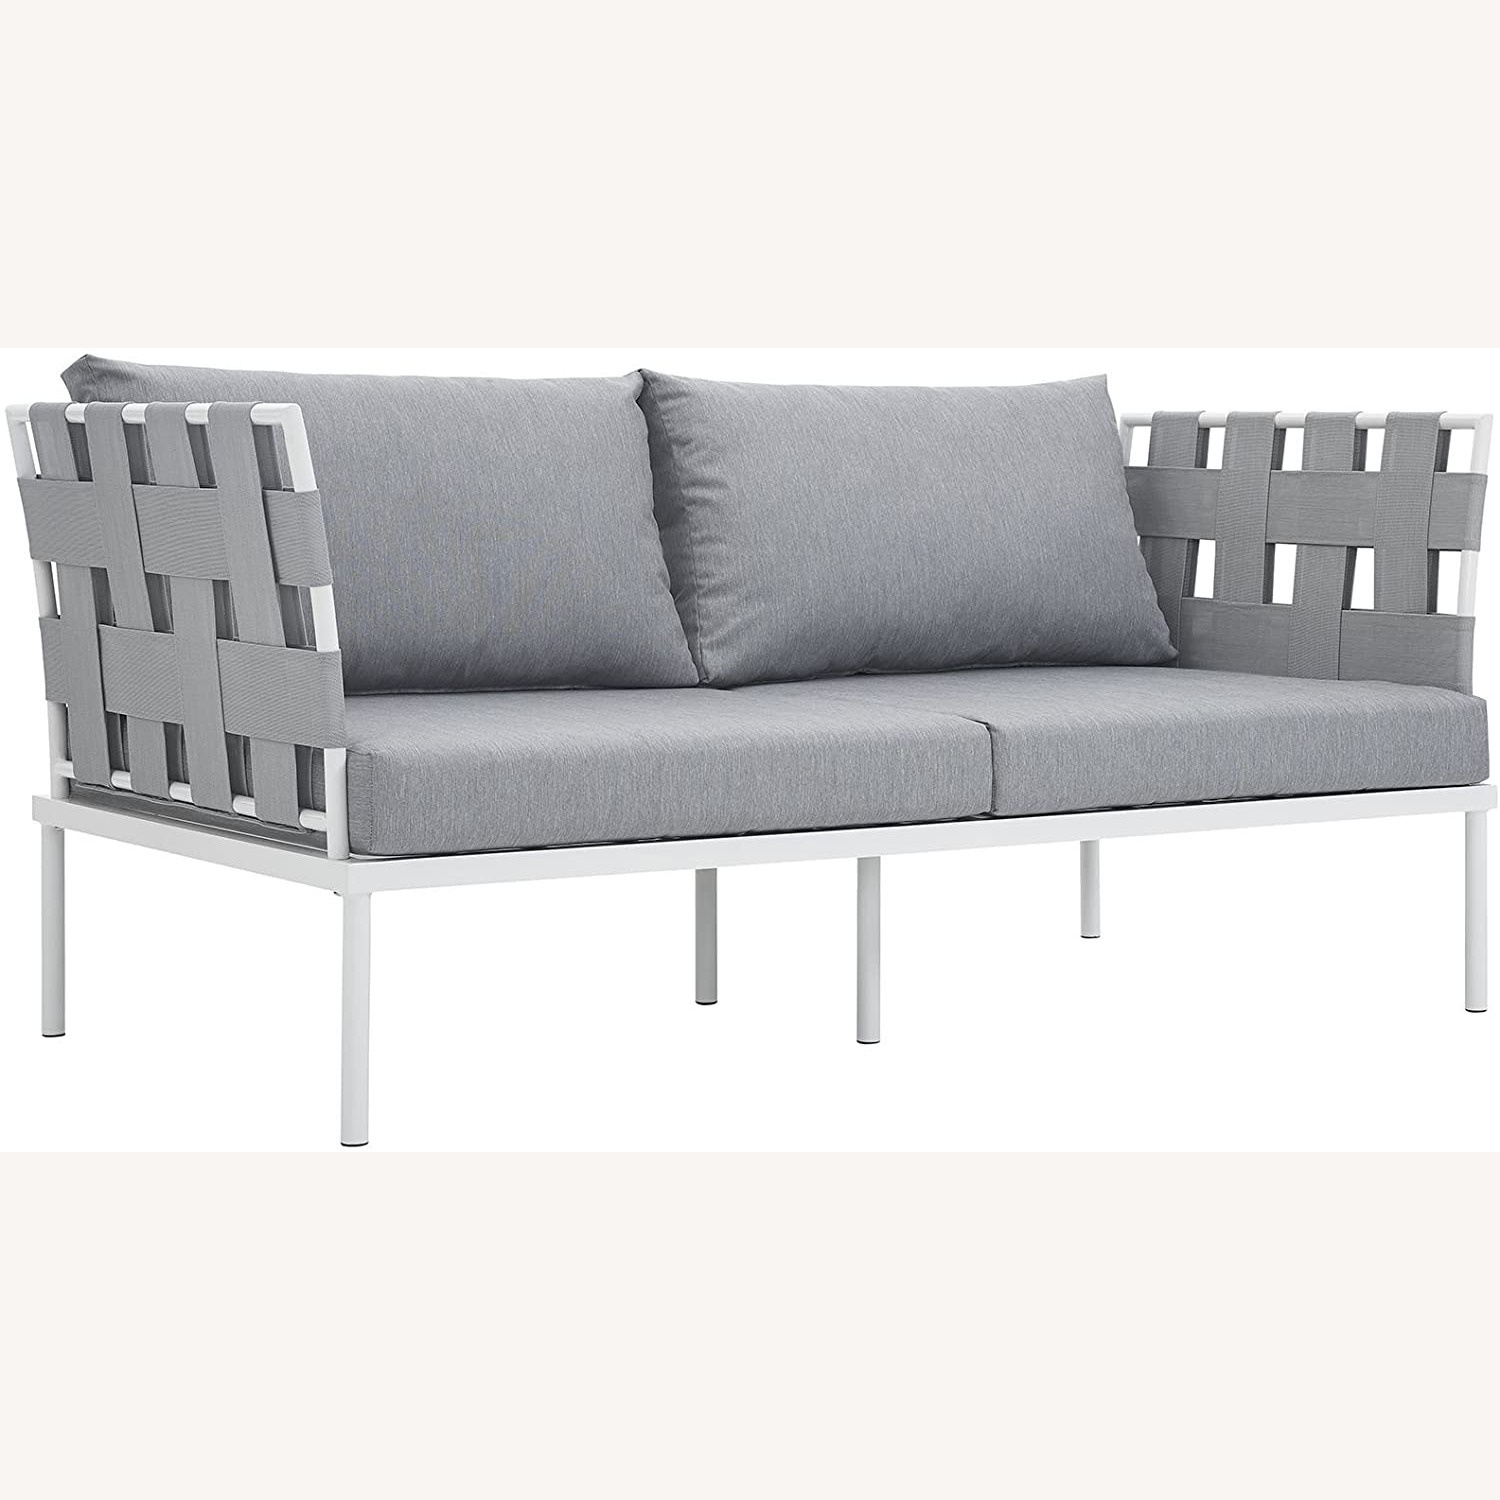 Outdoor Loveseat In Gray Silk Polyester Weave - image-0